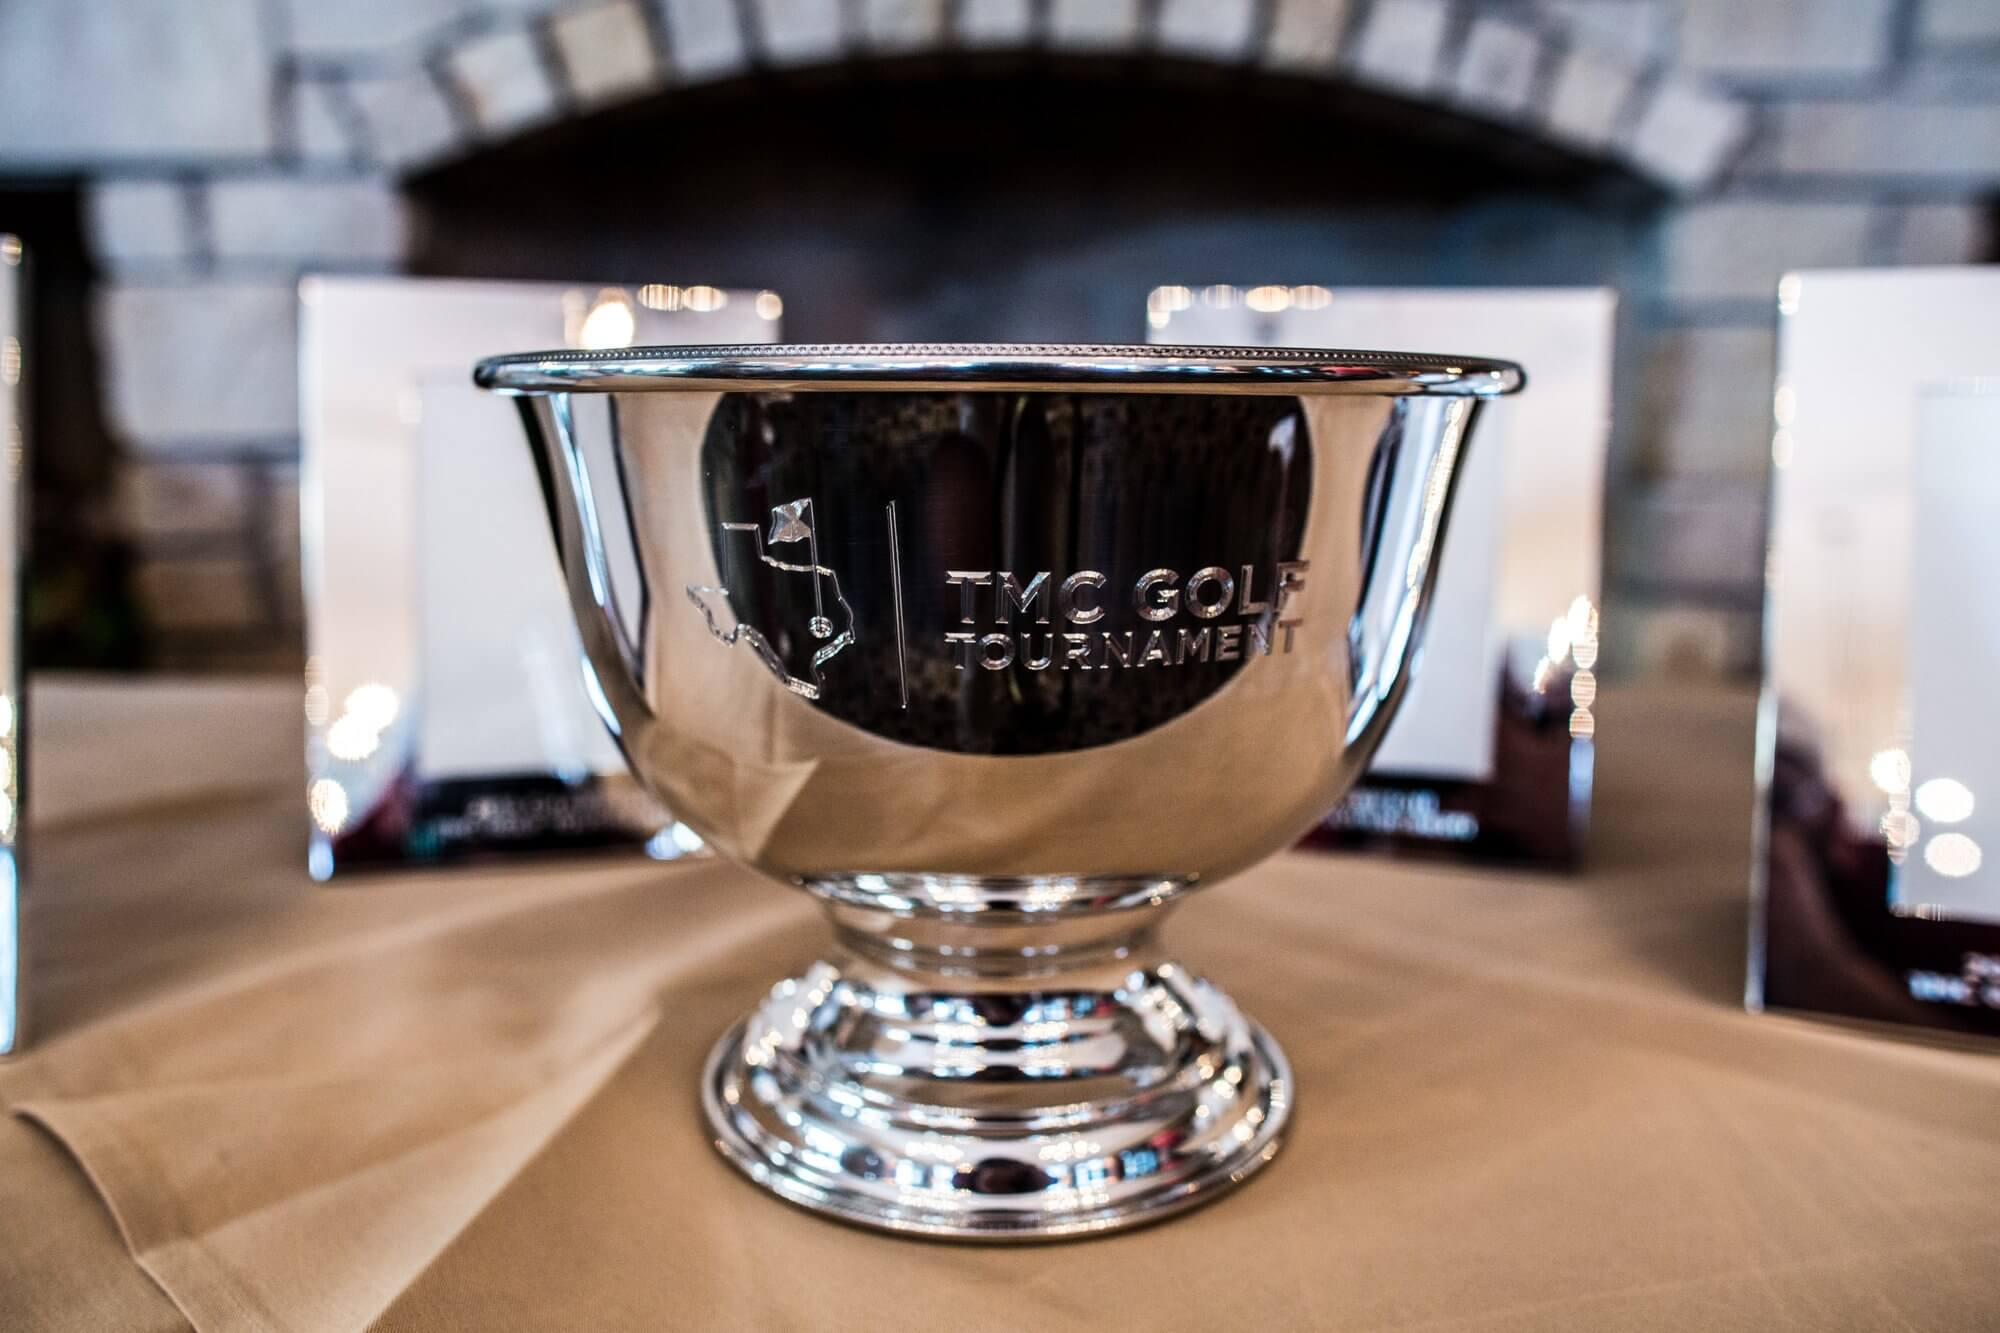 The cup on which winners names will be etched annually.